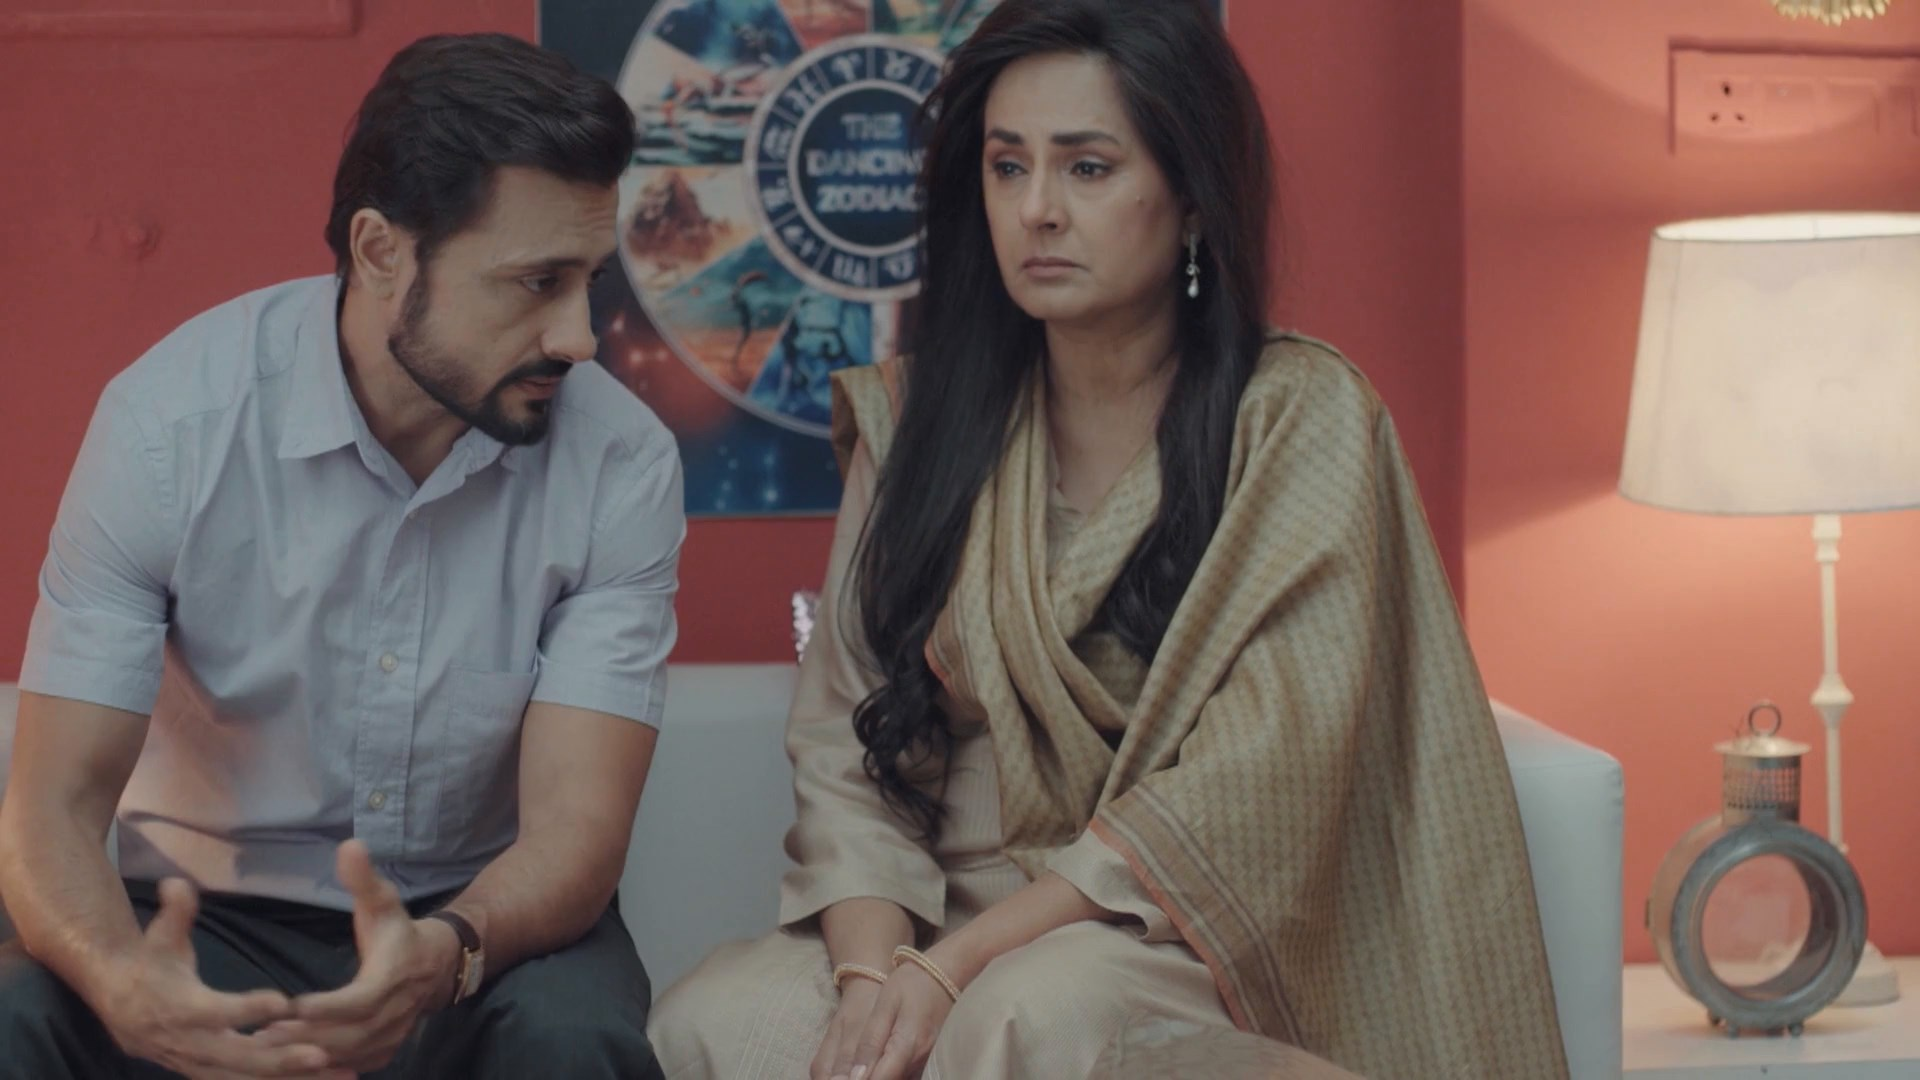 Illegal33574c2 - Illegal 2020 Hindi S01 Voot Select Complete Web Series 480p HDRip 900MB x264 AAC